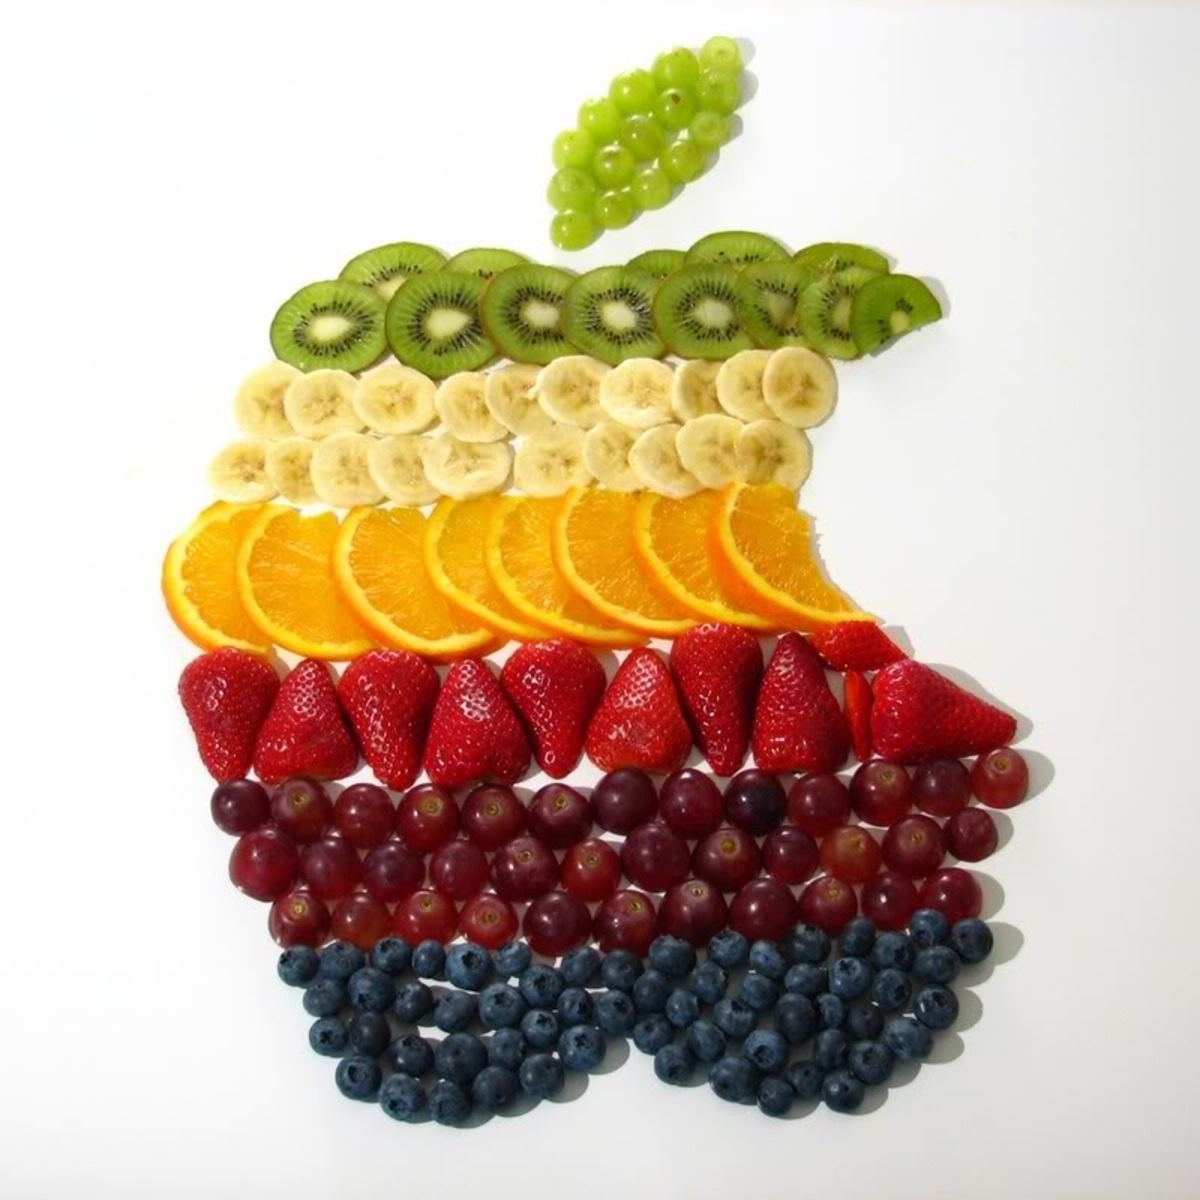 Eat healthy snacks, such as fruits - Walking to lose weight, photo by Yousif_aliraqi